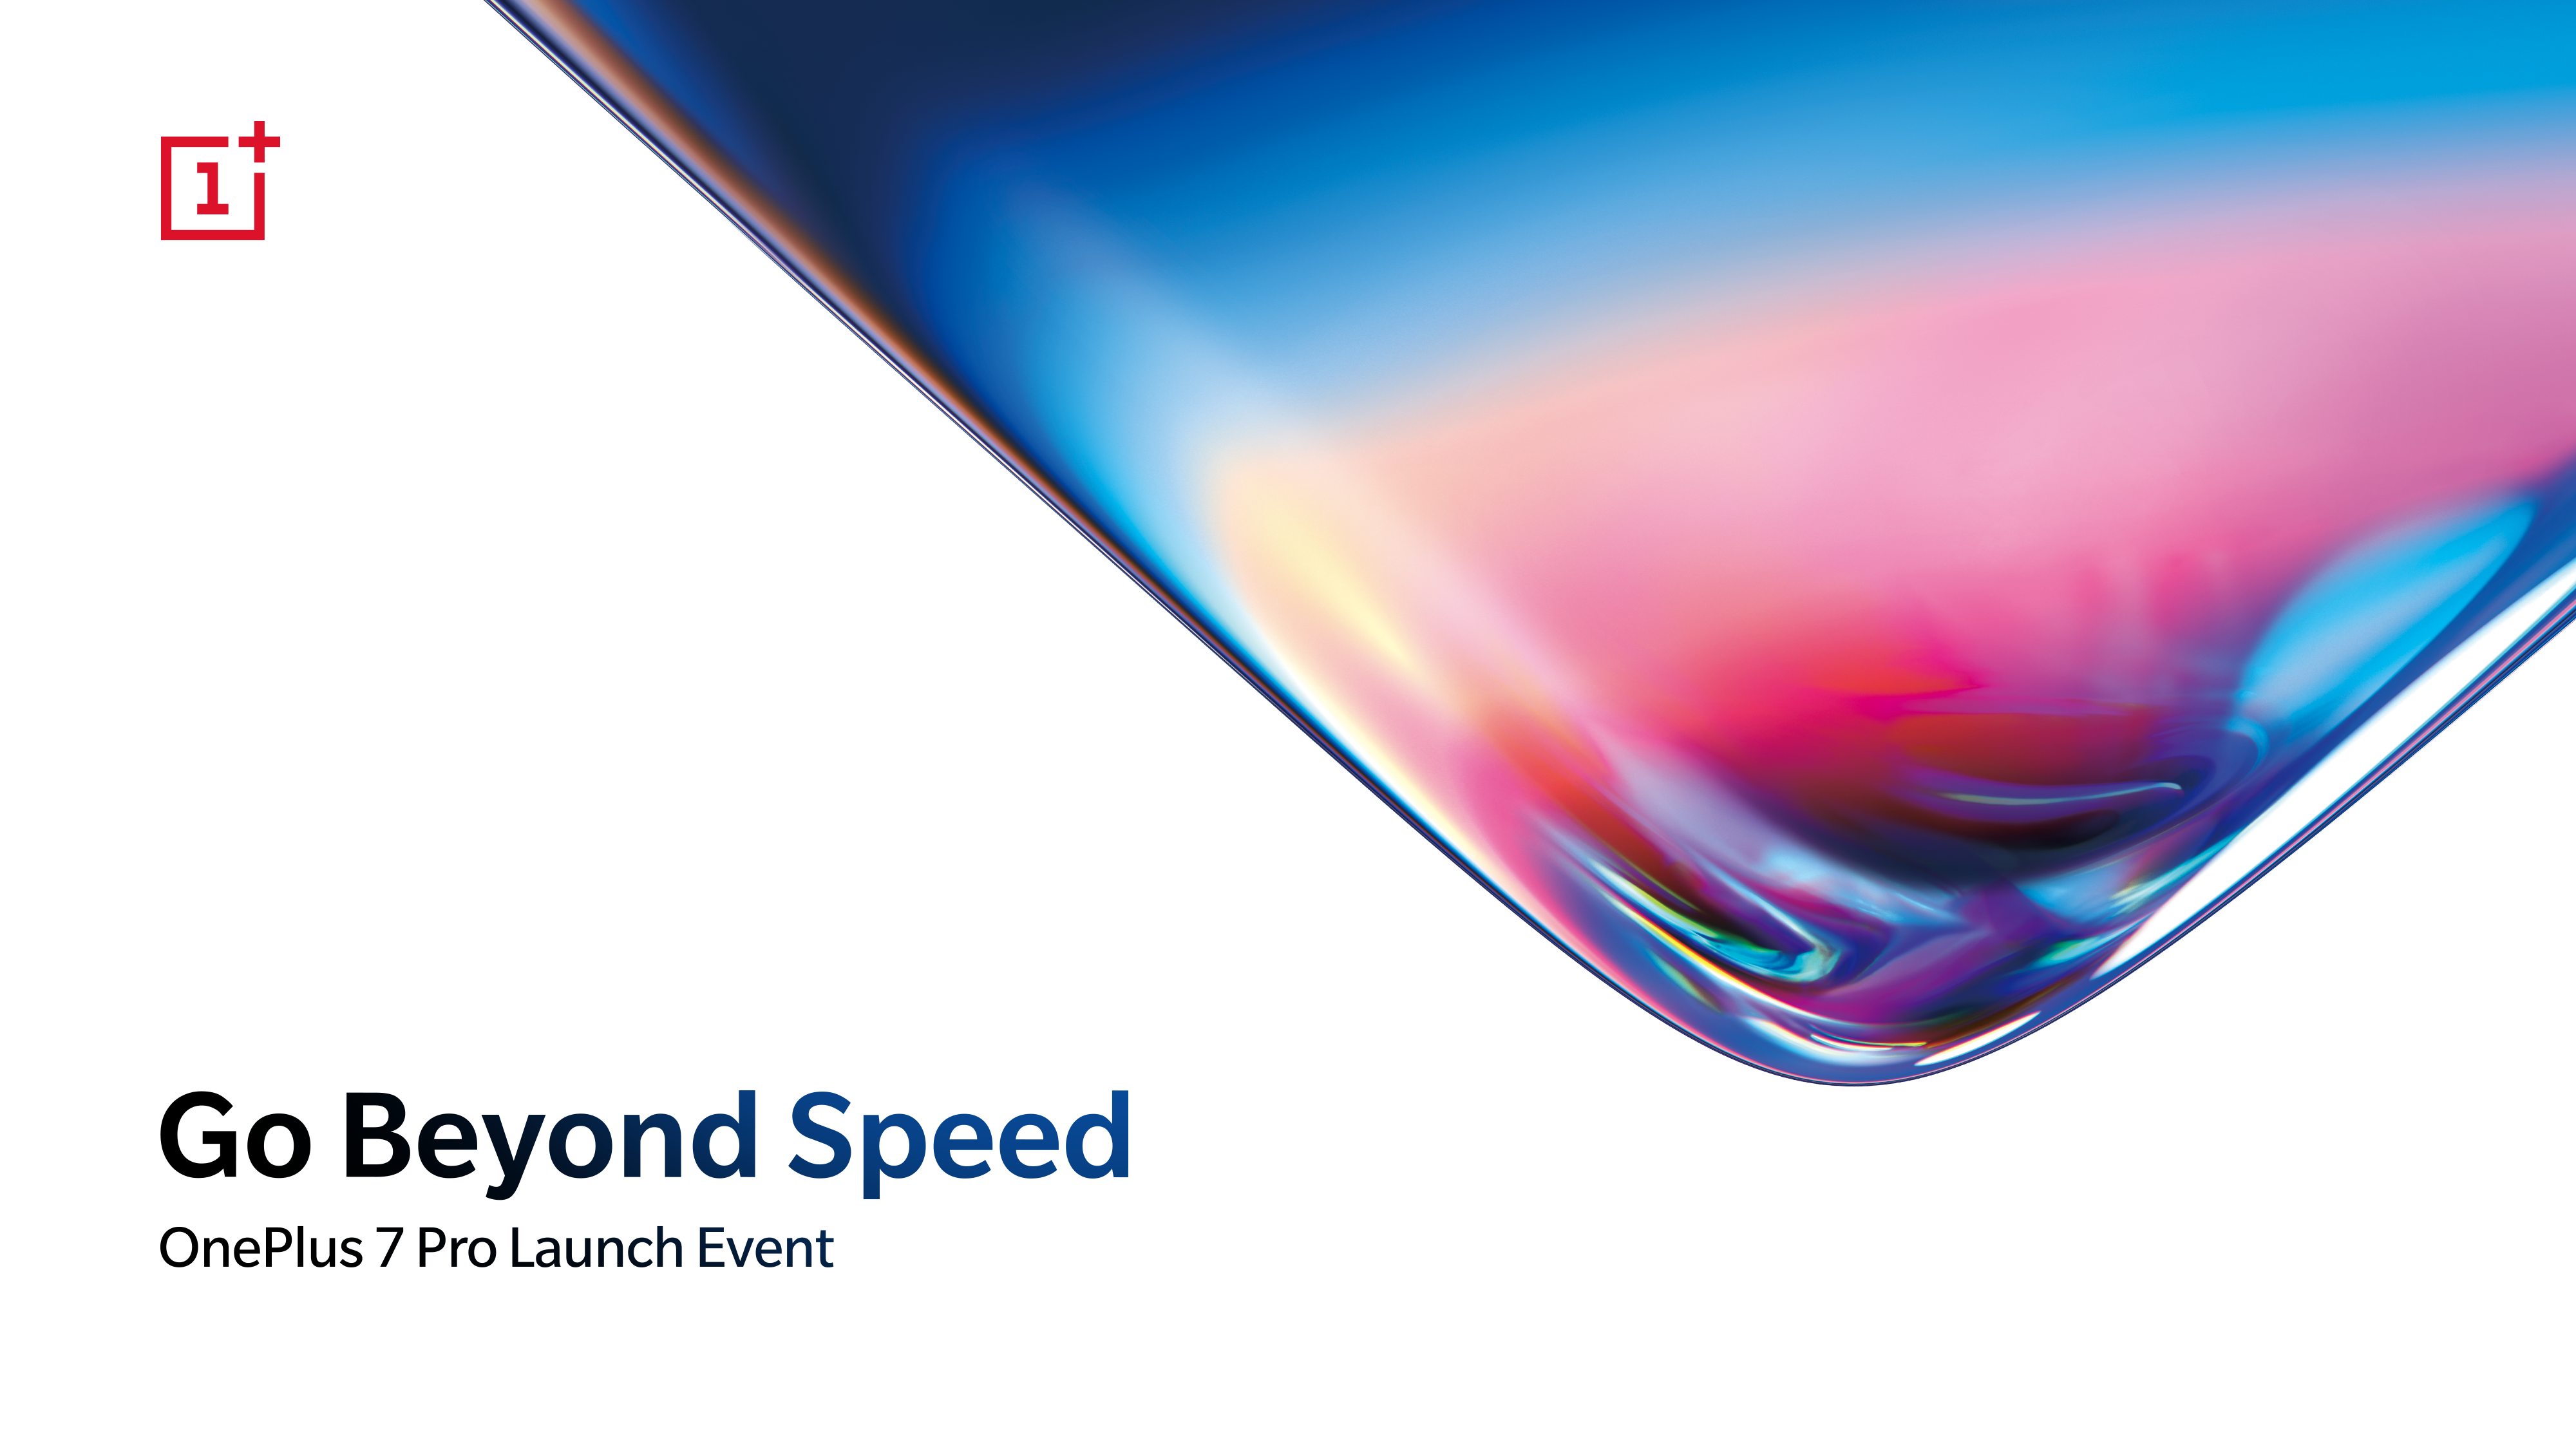 [Update: Non-Pro OnePlus 7, too] The OnePlus 7 Pro will be unveiled on May 14 in New York